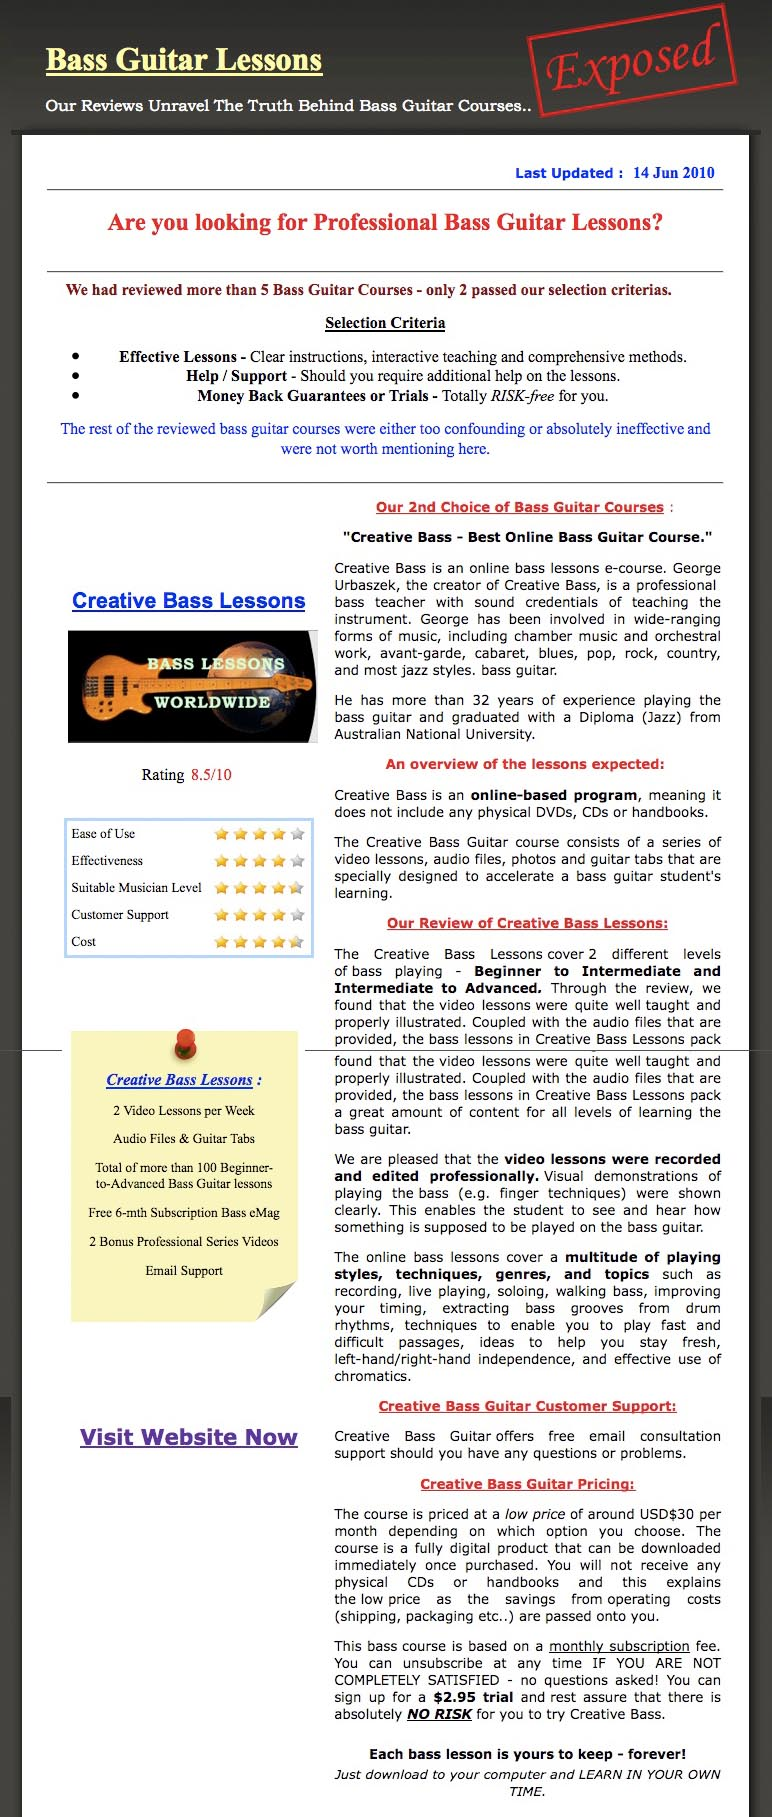 Testimonials about Bass Lessons Online